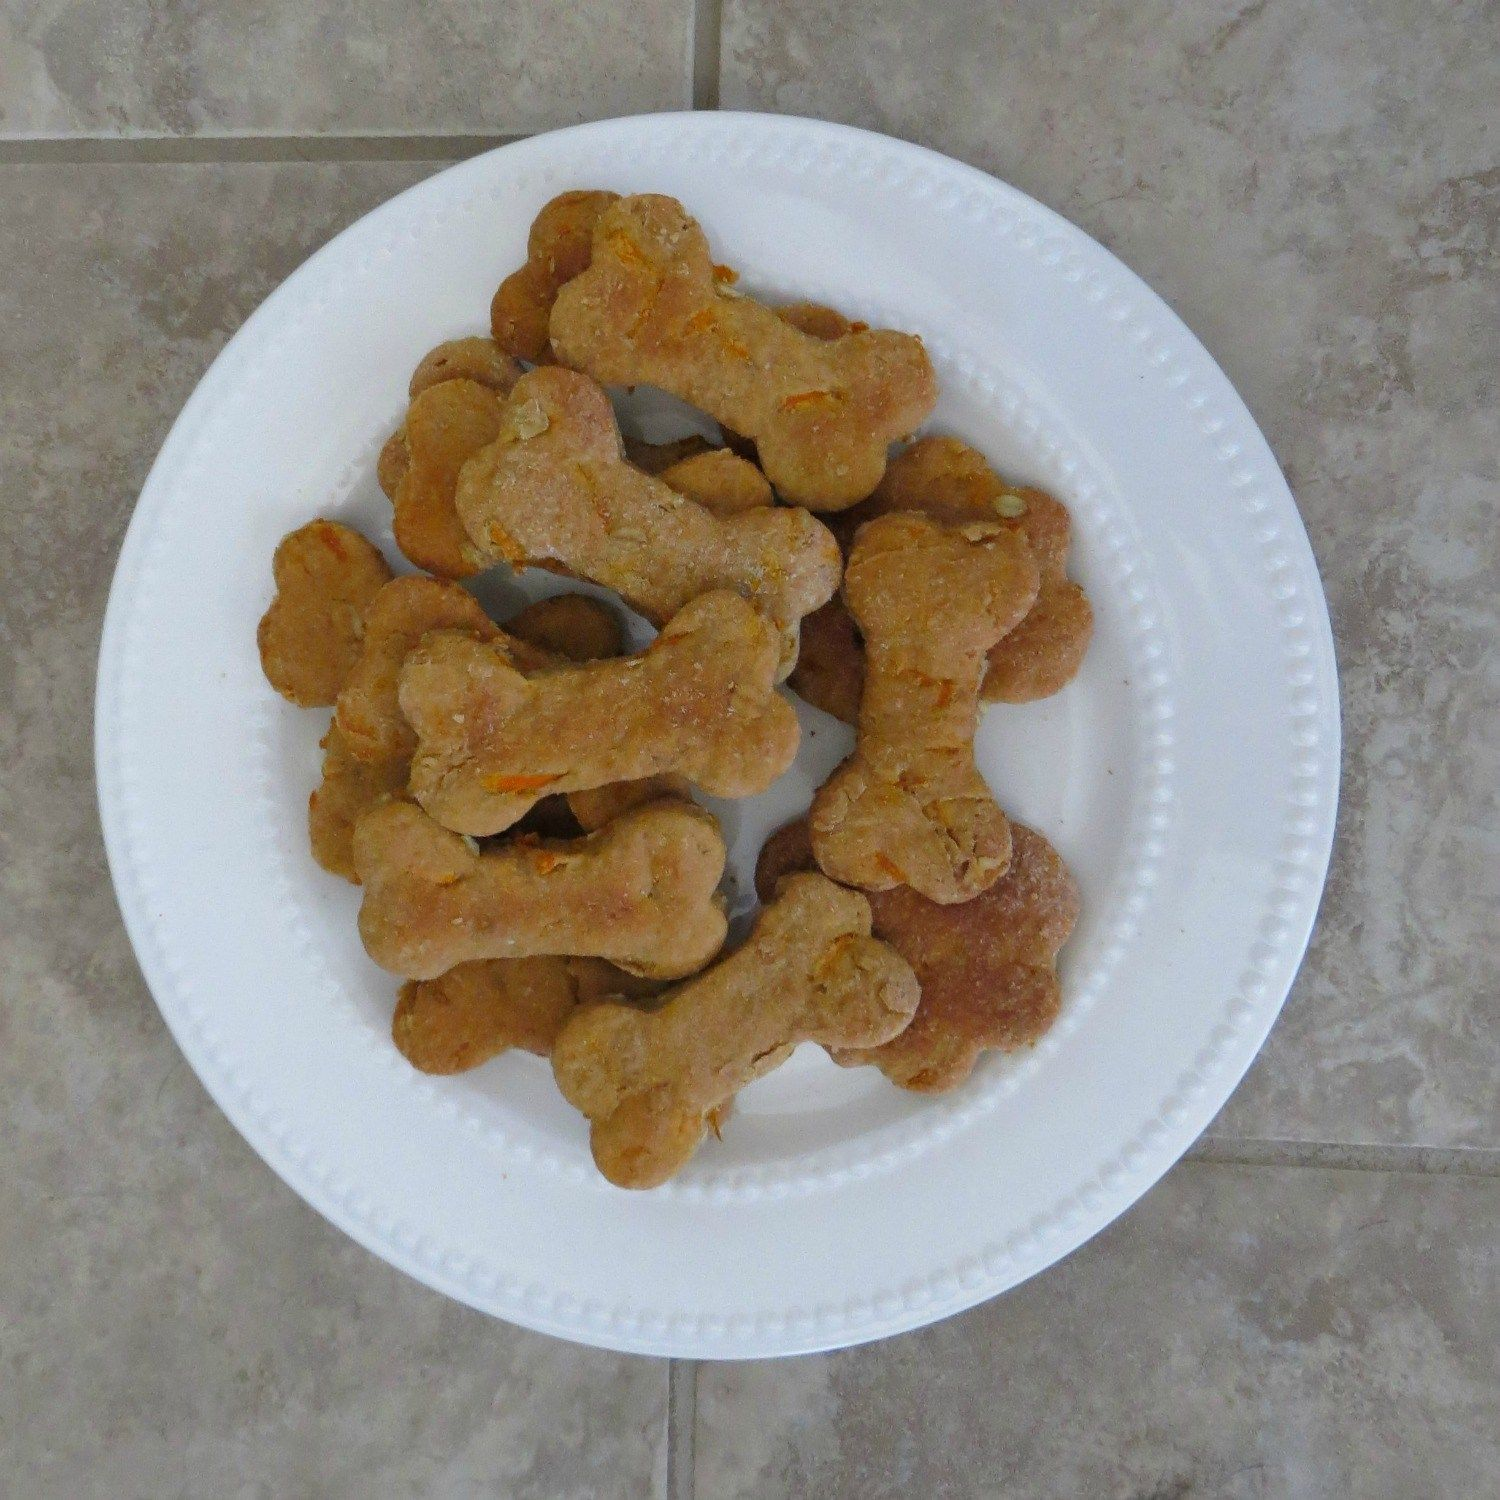 Easy Peanut Butter and Carrot Homemade Dog Treats // One bowl recipe!